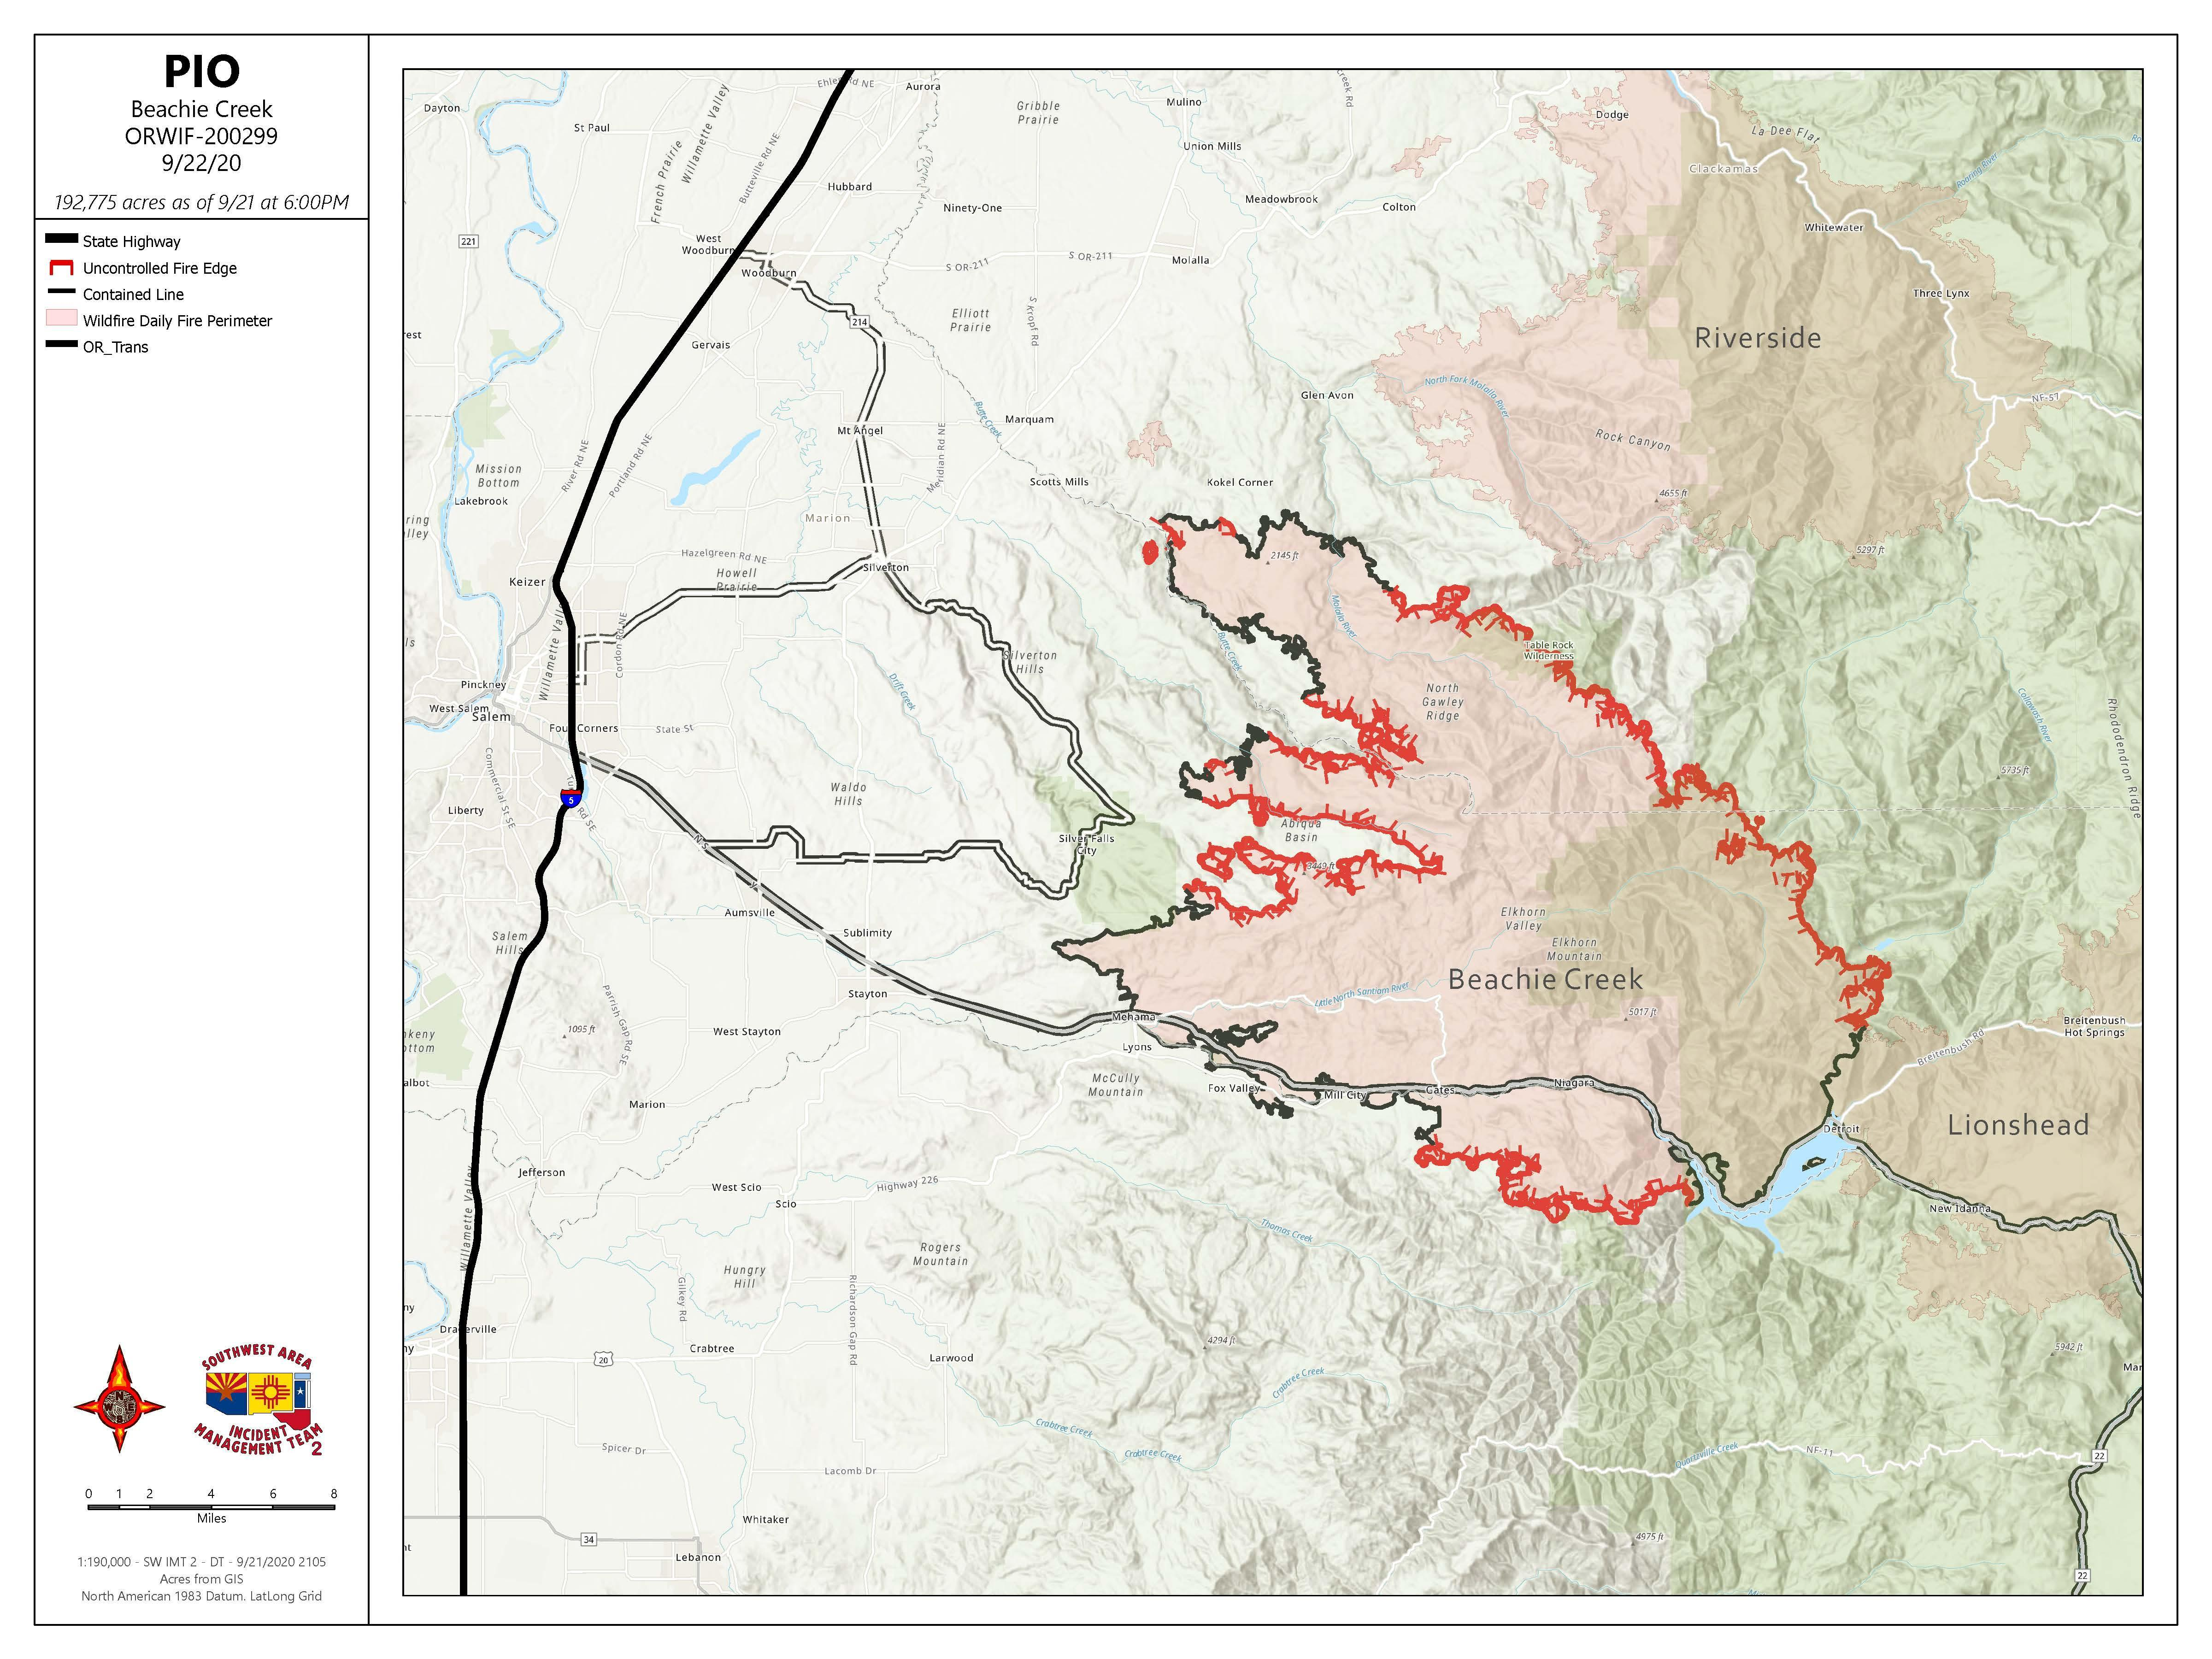 Map of Beachie Creek Fire Perimeter on Tuesday, September 22, 2020